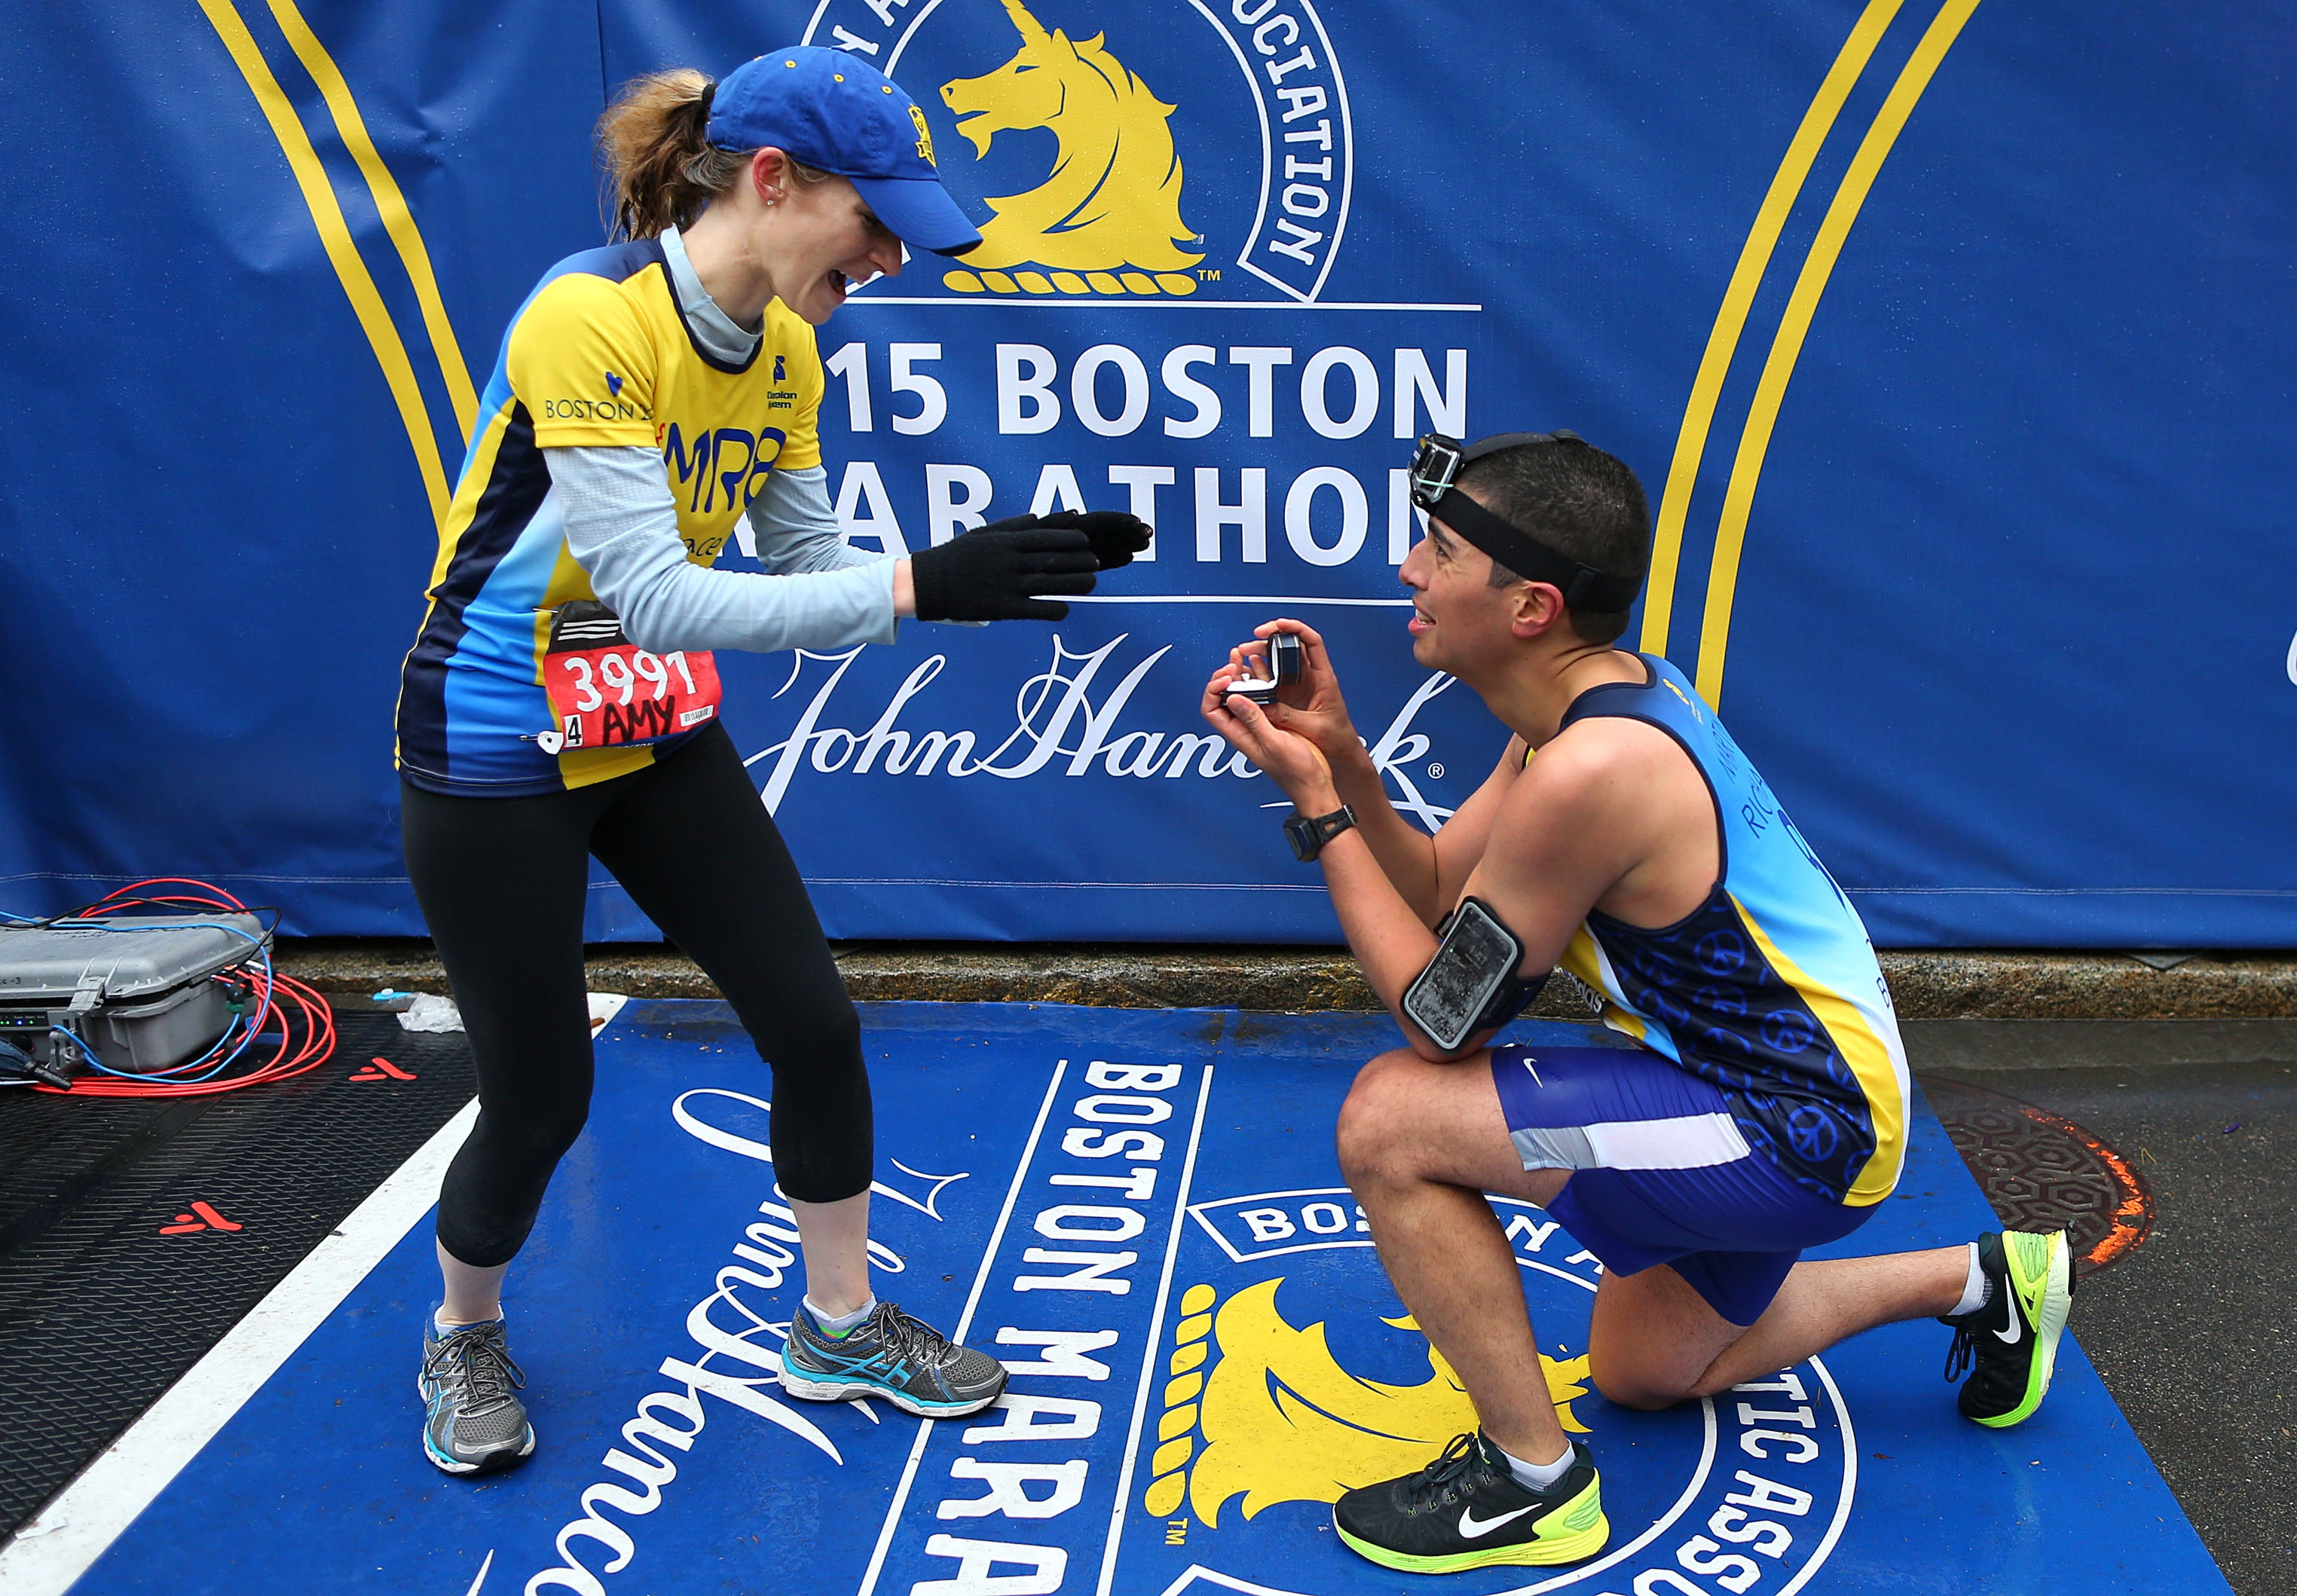 April 20: Will you marry me? Mayor Marty Walsh's Chief of Staff Daniel Koh proposed to his fiancée Amy Sennett on the Boston Marathon finish line after they both finished together.